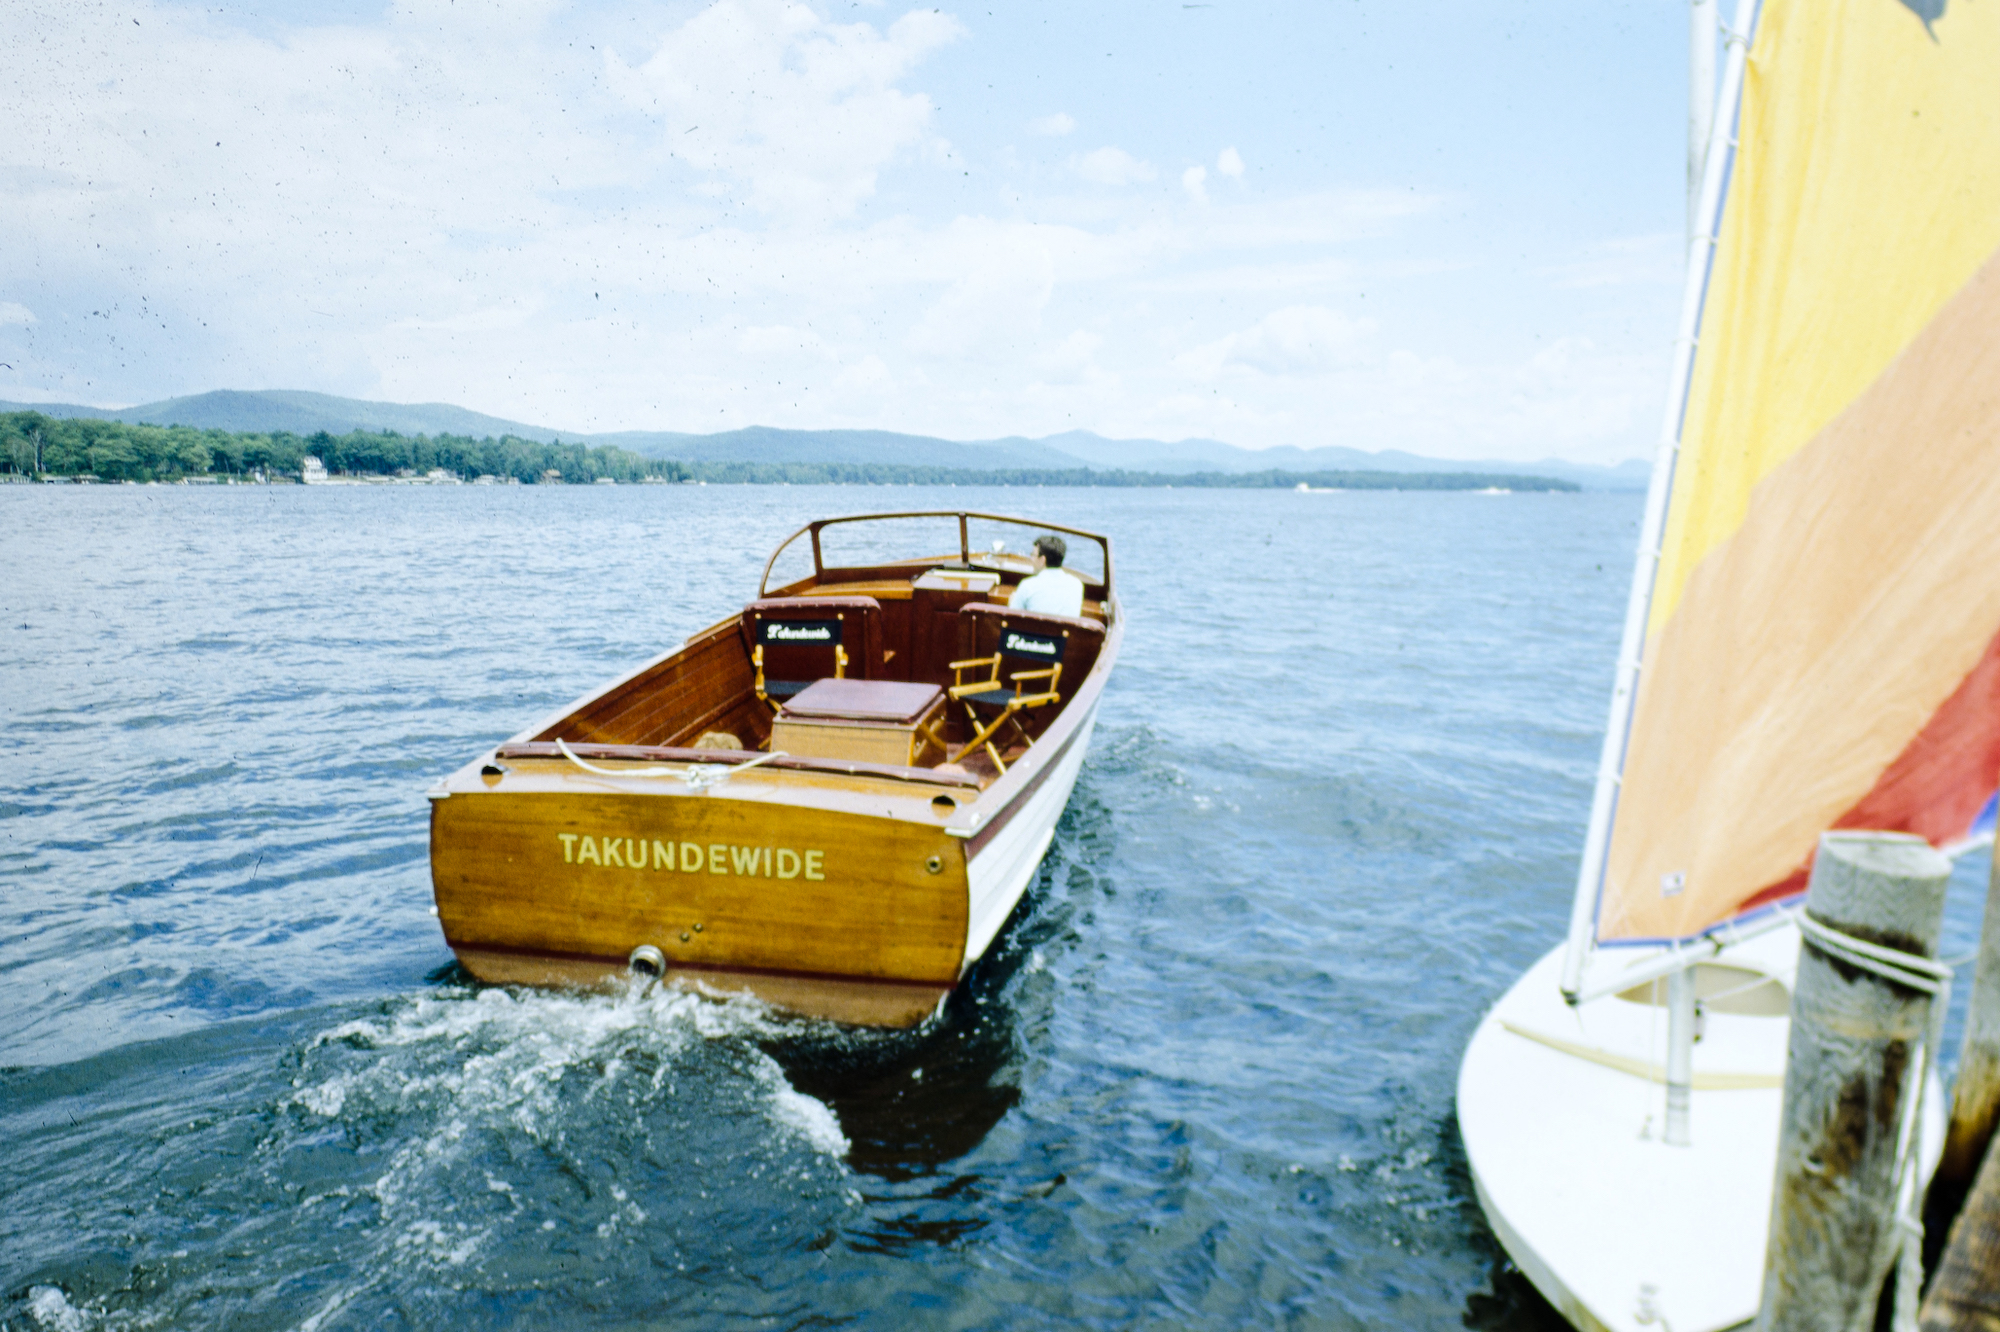 Takundewide boat 1988